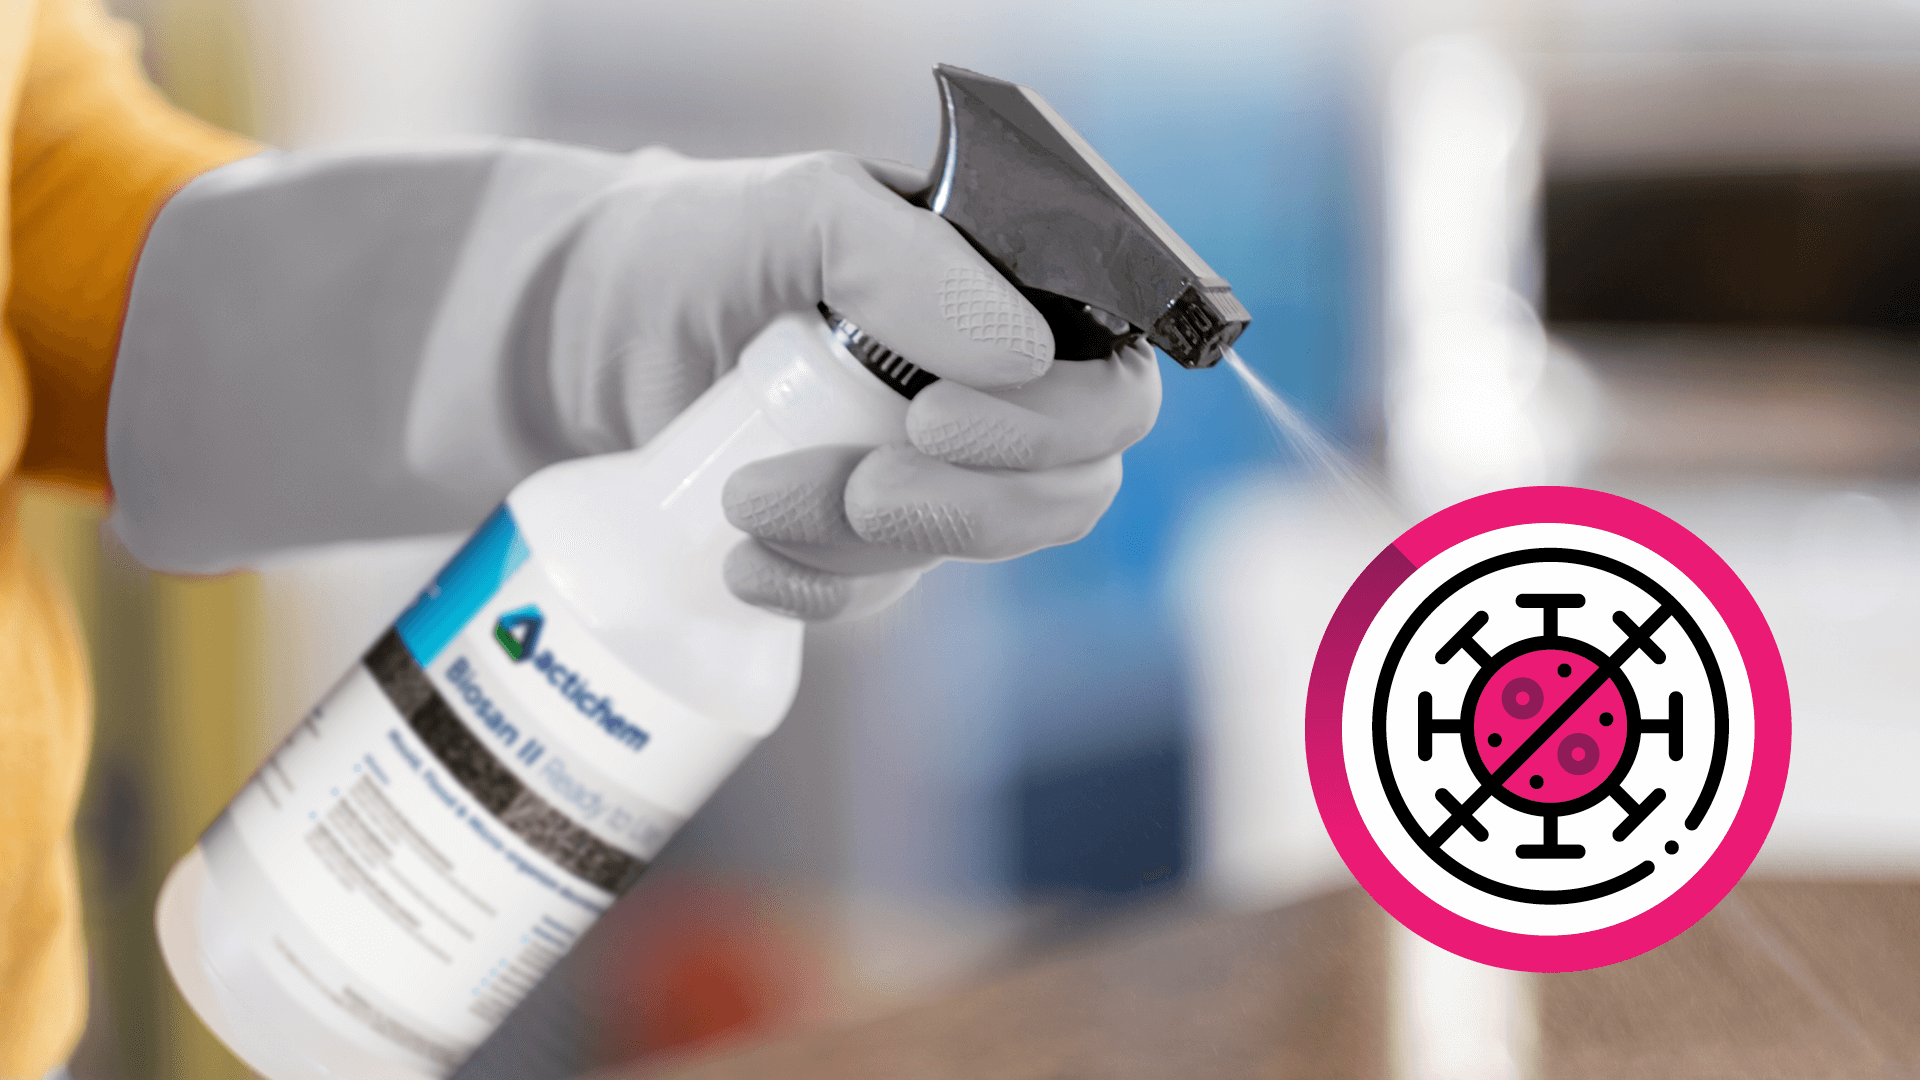 How to Use Surface Disinfection to Fight COVID-19